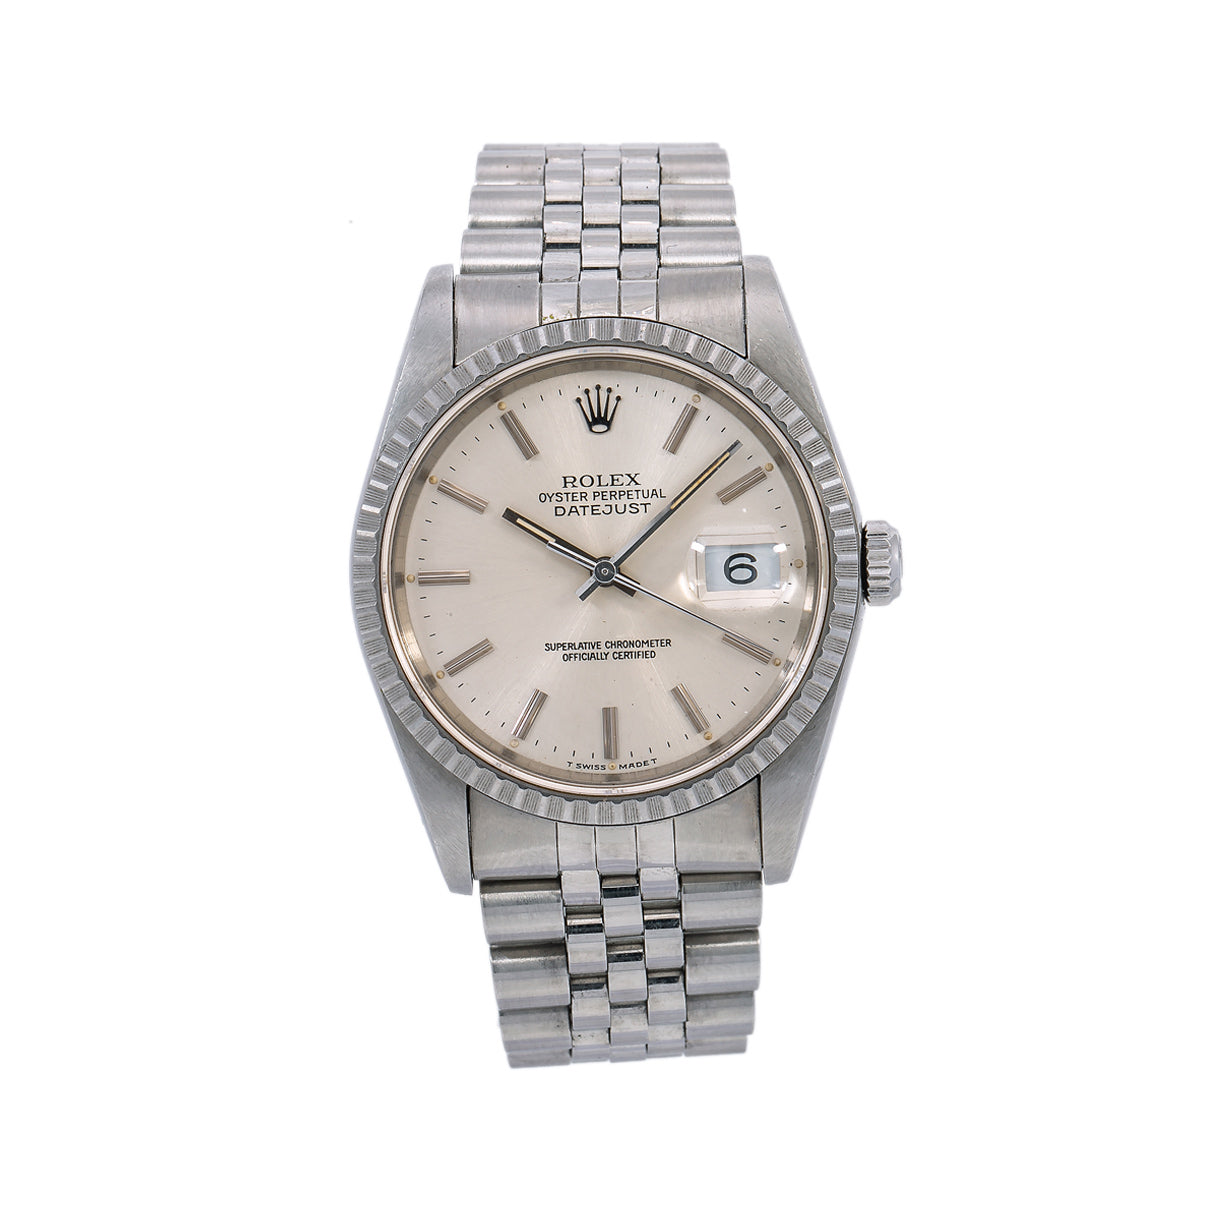 Rolex Datejust 36MM Silver Dial With Stainless Steel Jubilee Bracelet